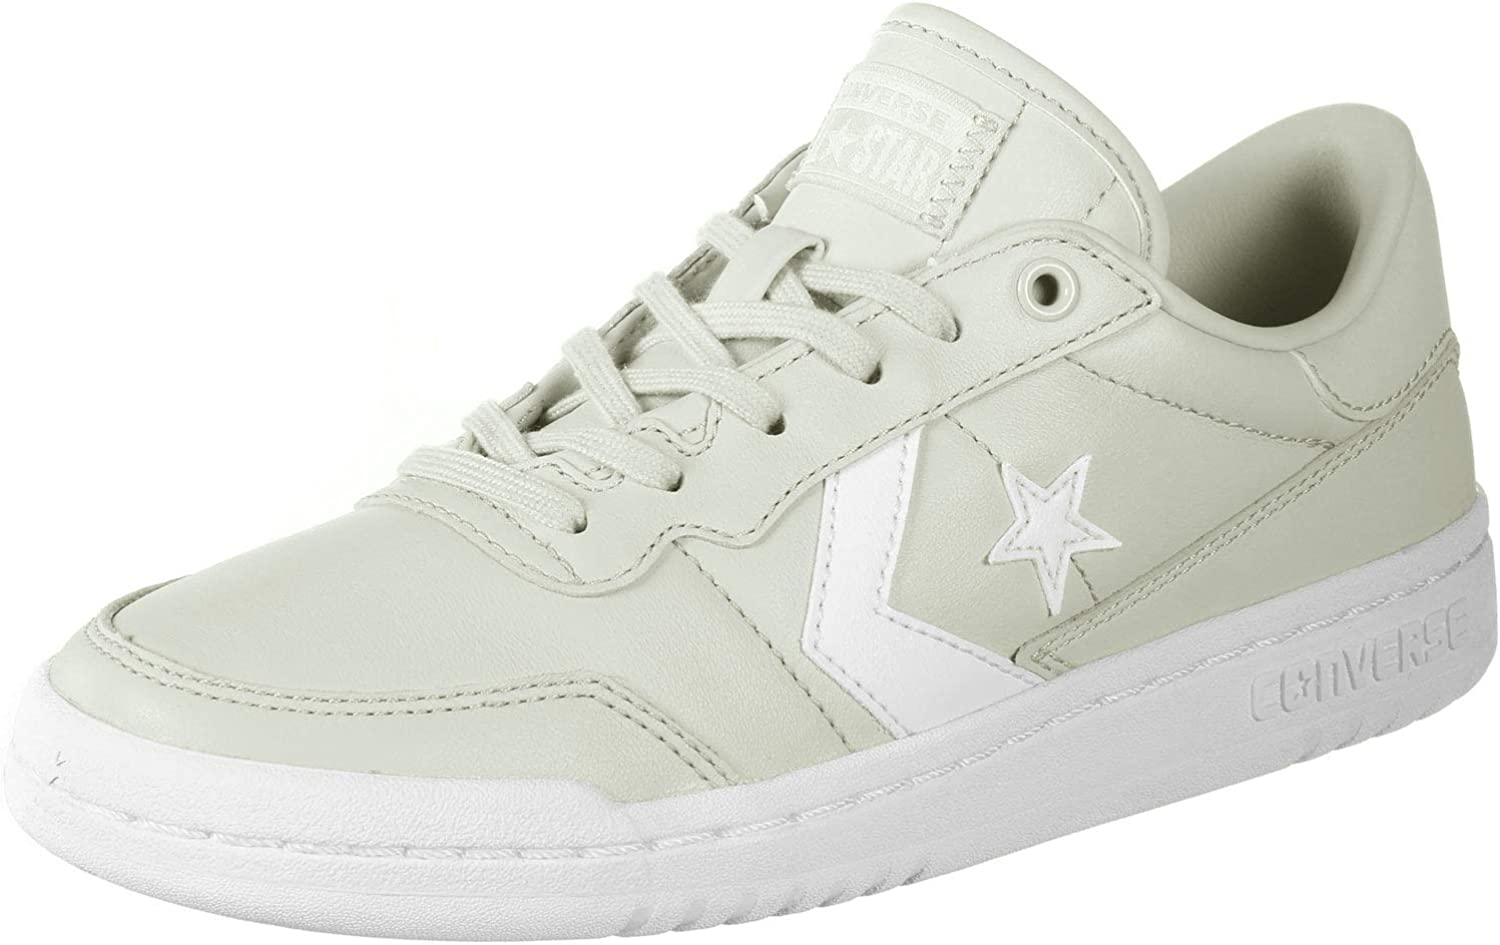 Converse Adults' Lifestyle Fastbreak Ox Low-Top Sneakers